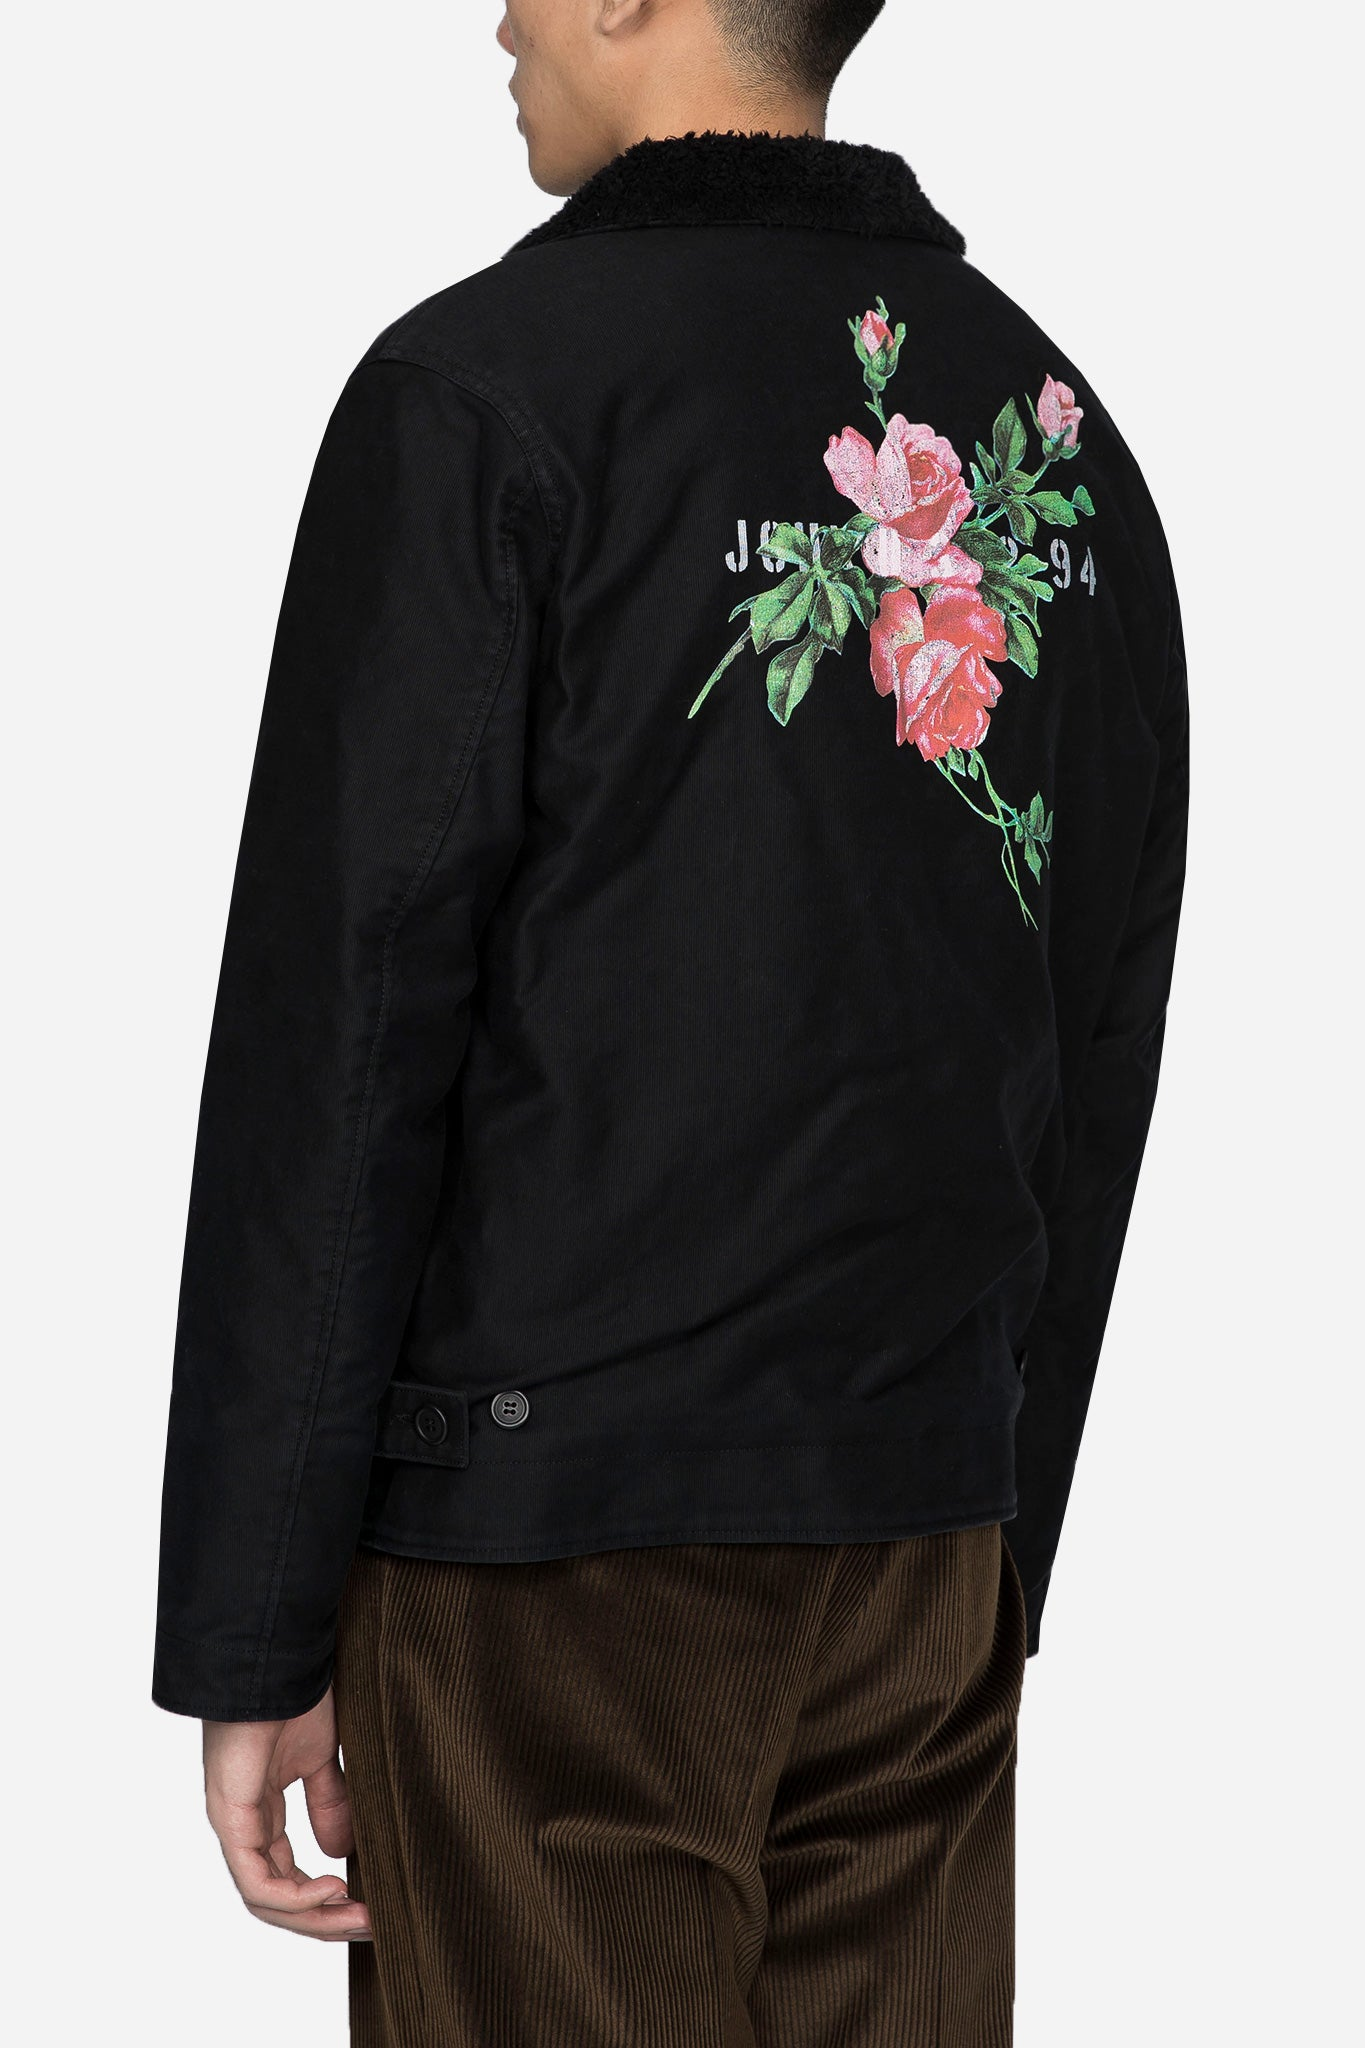 Worker Jacket with Rose Graphic Black